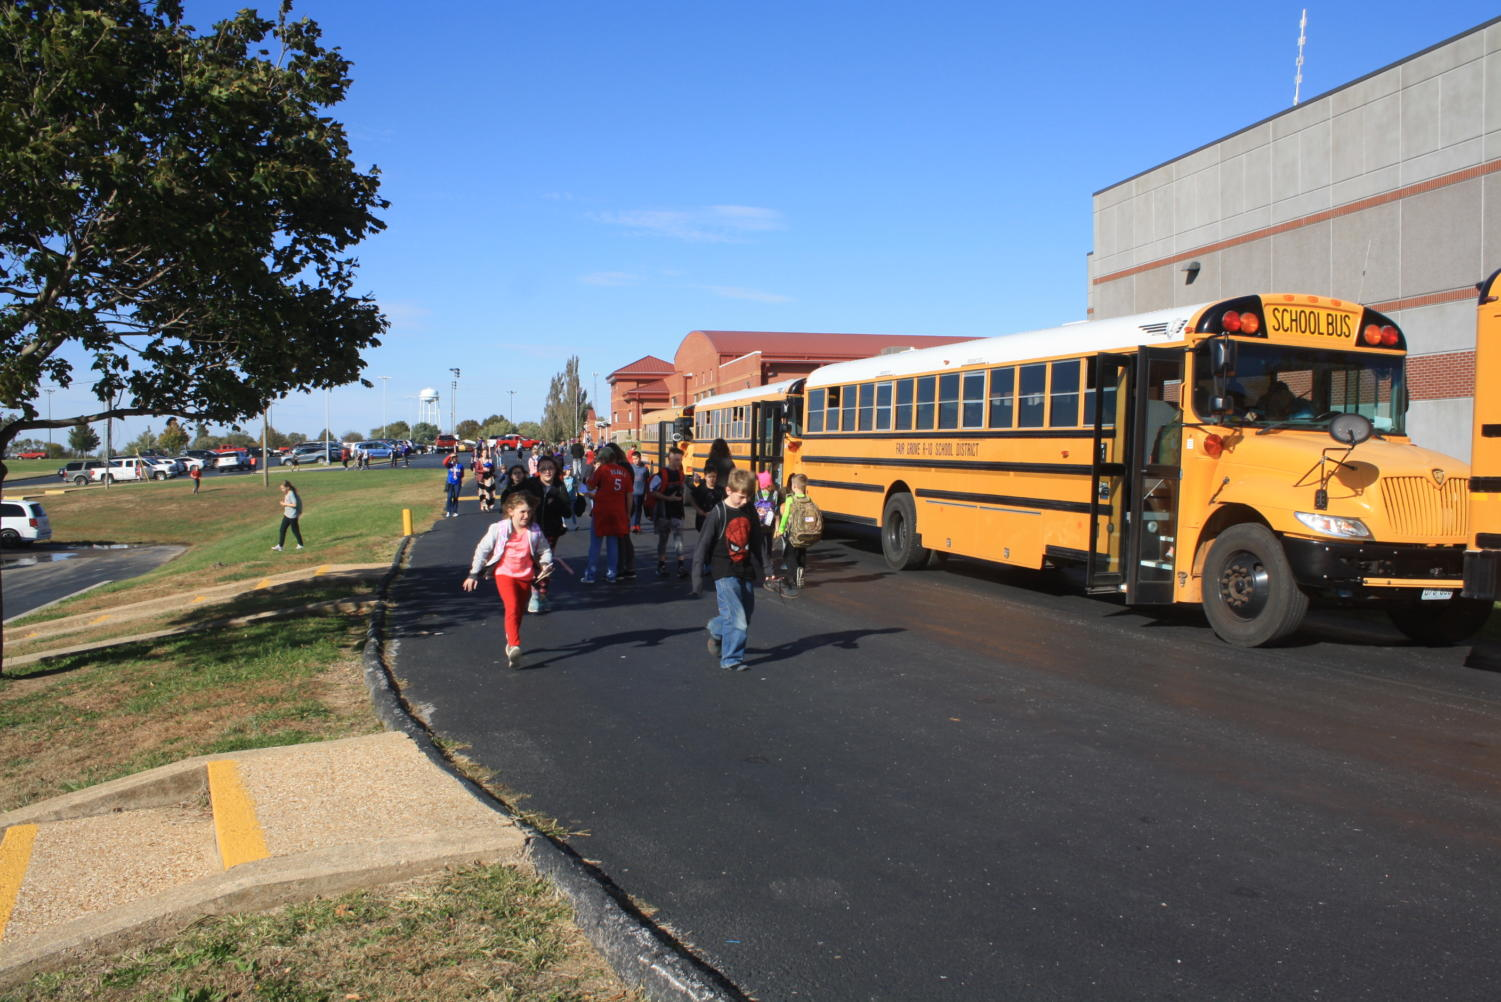 Students walking to the bus after school ready to thank their bus drivers